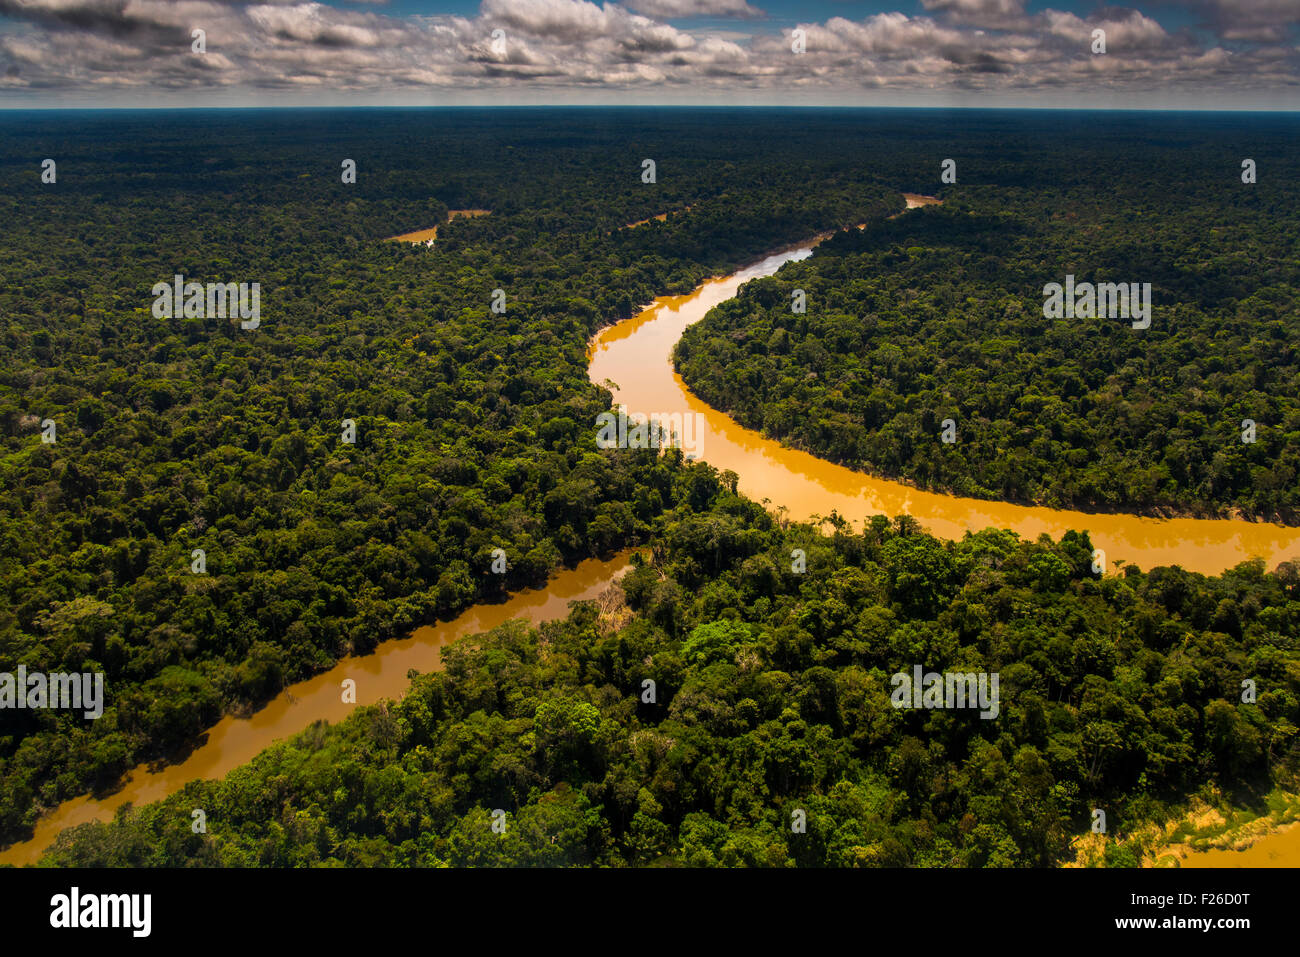 Rainforest aerial, Yavari-Mirin River, oxbow lake and primary forest, Amazon Region, Peru - Stock Image